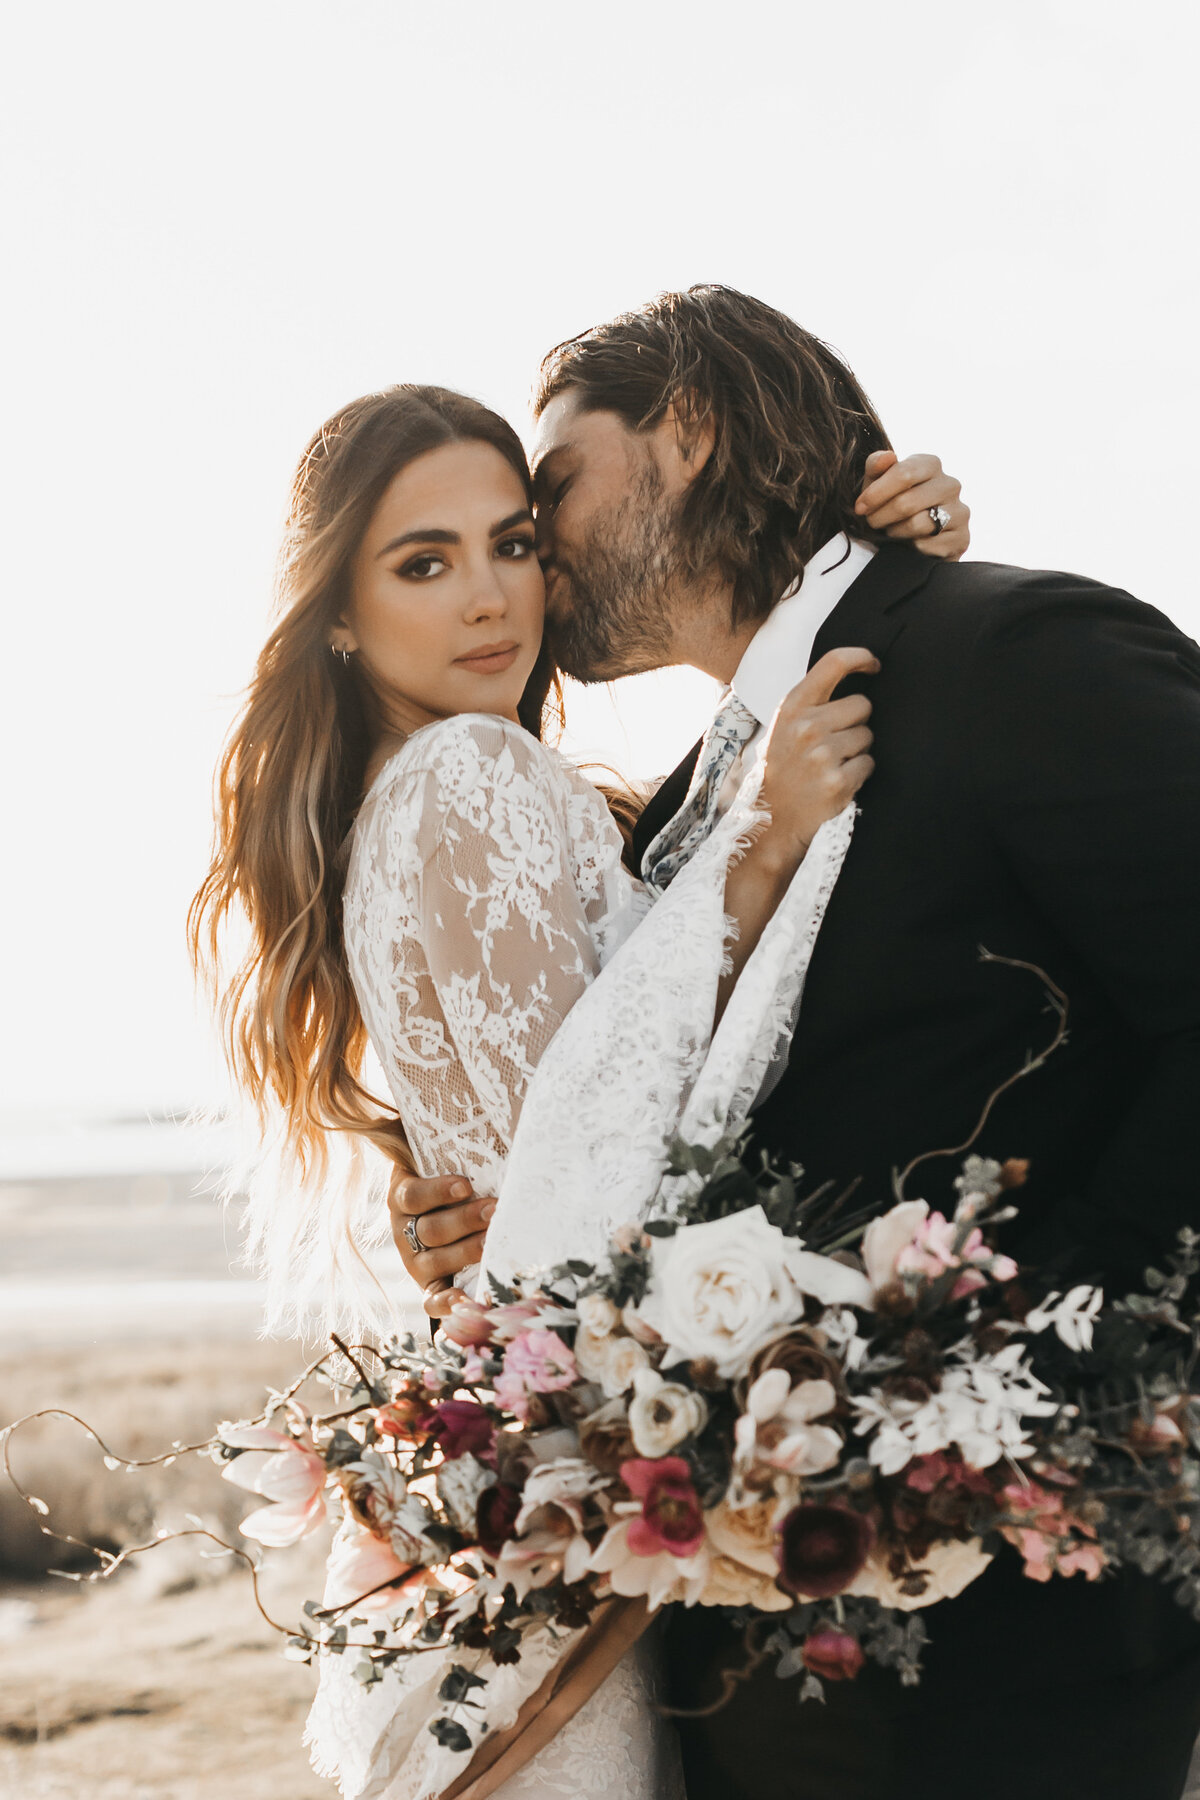 Antelope_Island_Beach_Wedding-28 - Copy